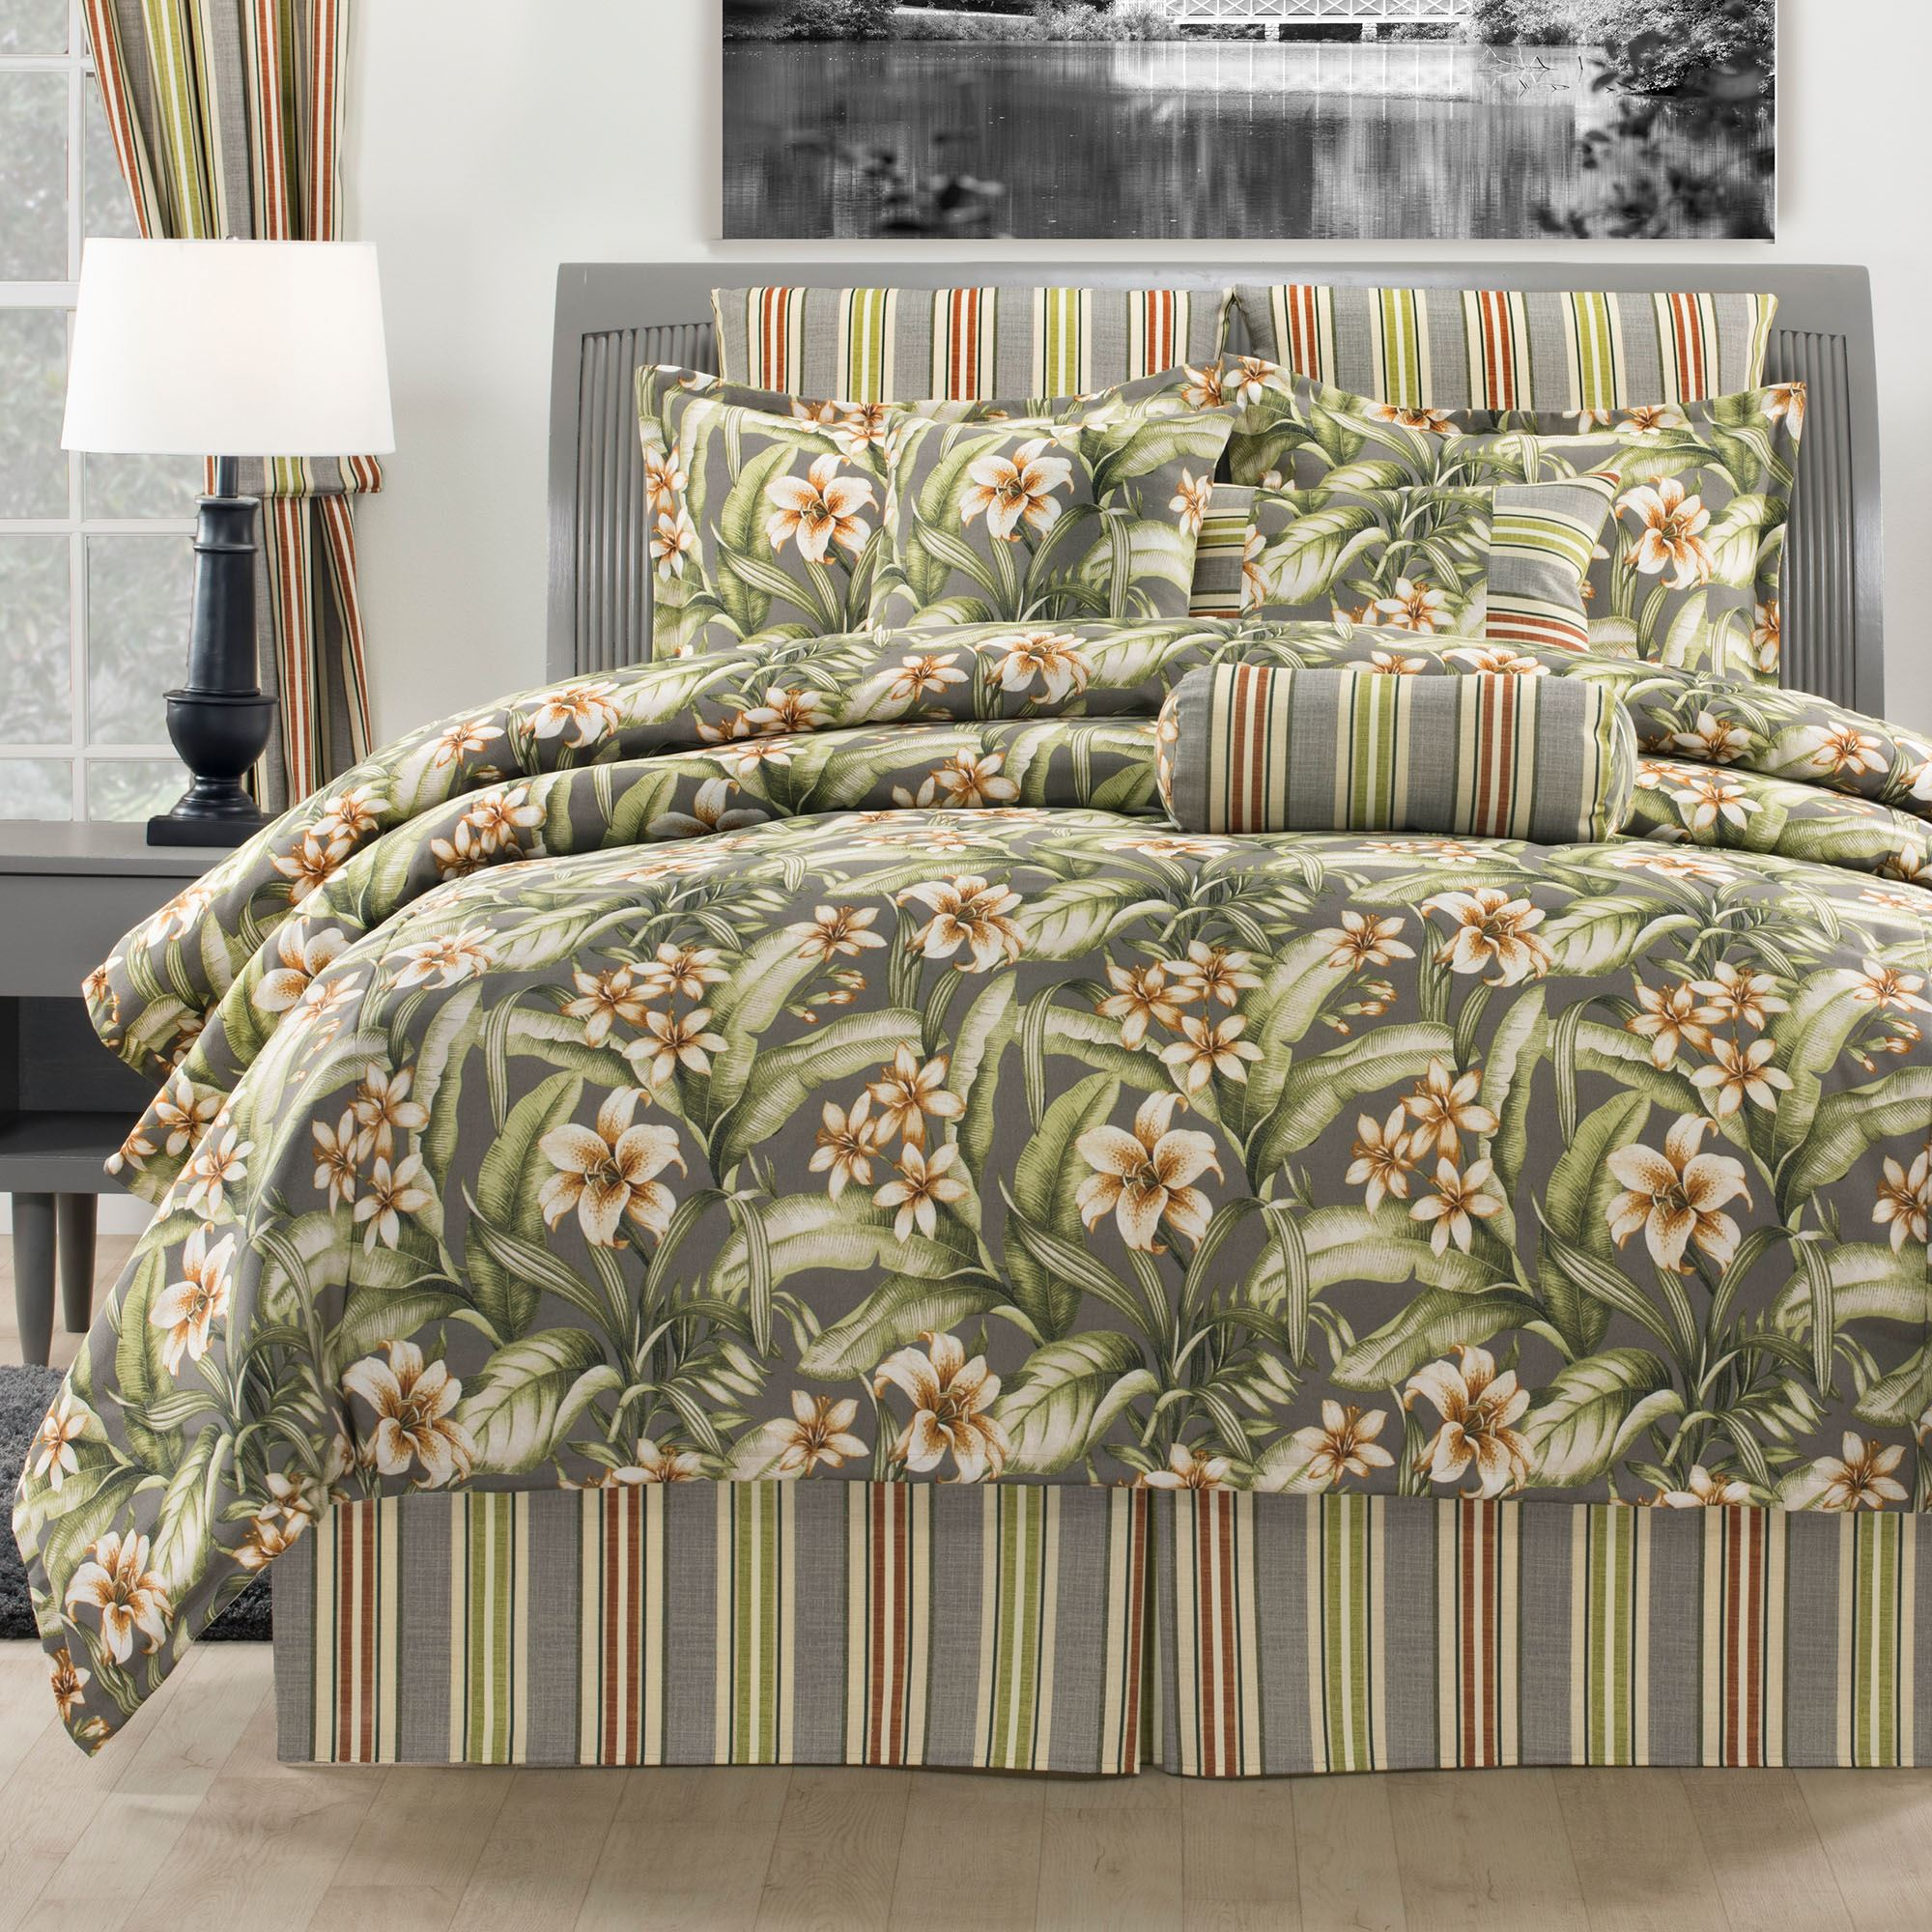 Tropical Lily Comforter Bedding